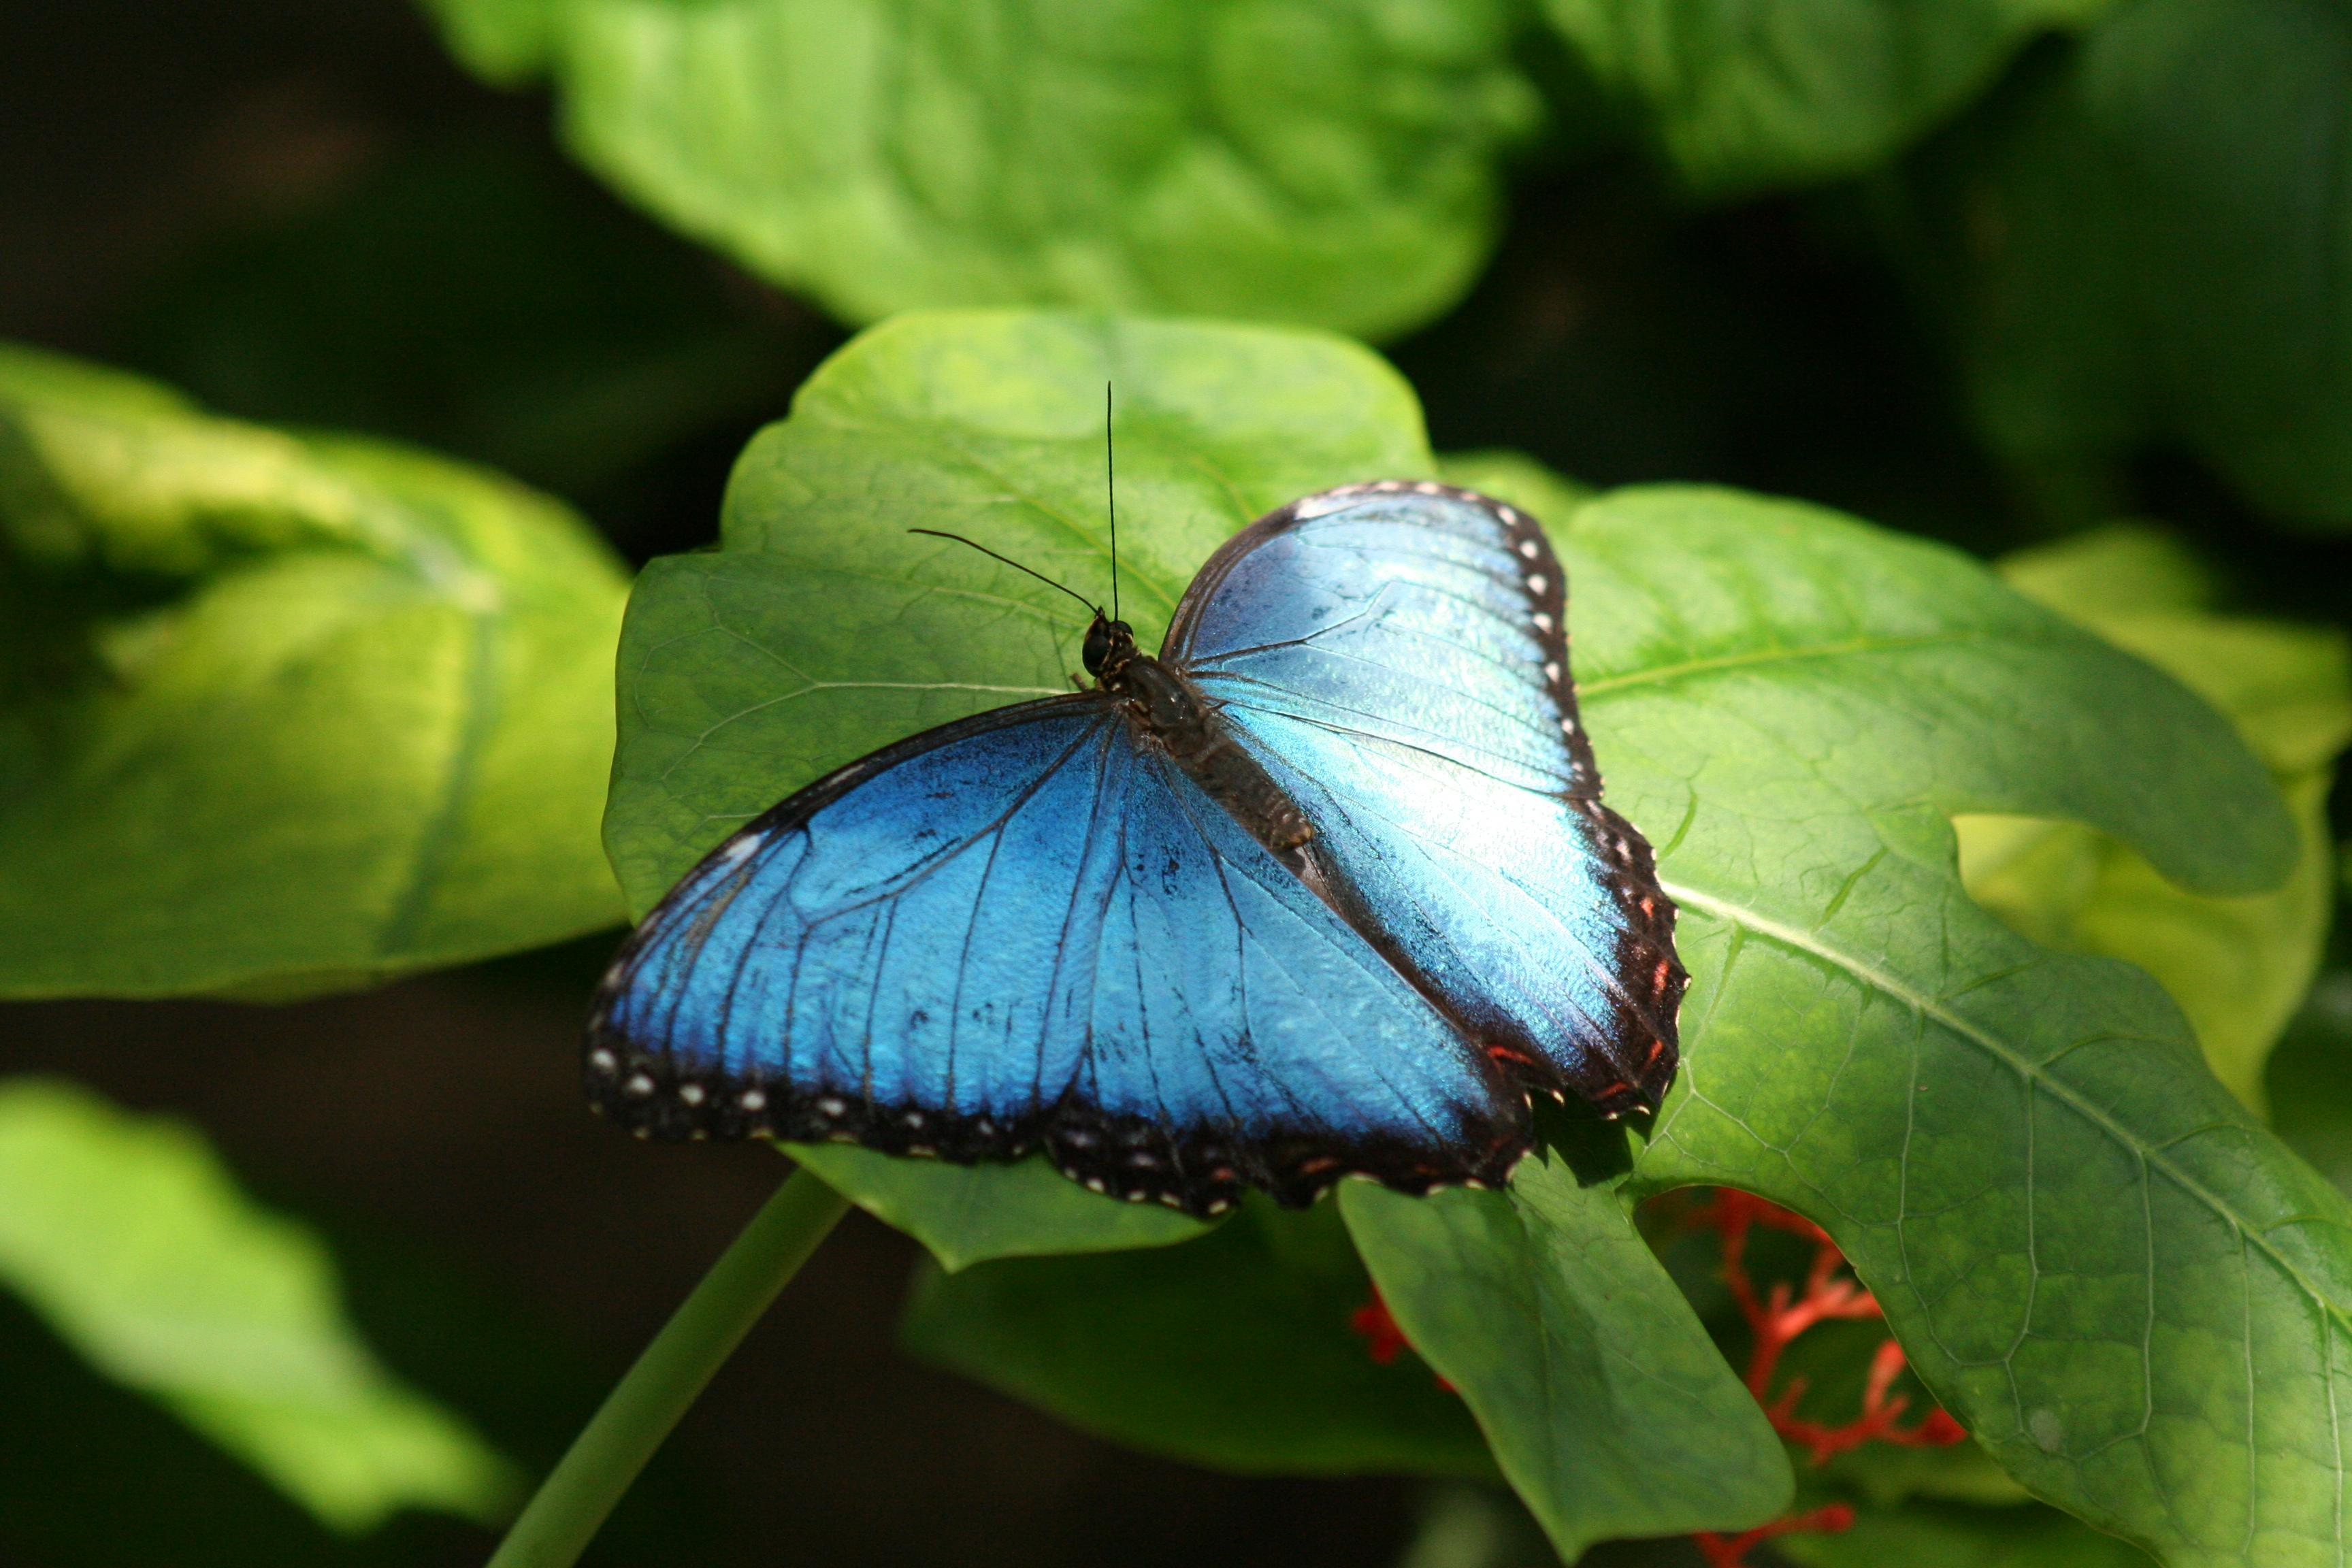 The brilliantly colored Morpho butterfly has inspired innovative biomimetic solutions.